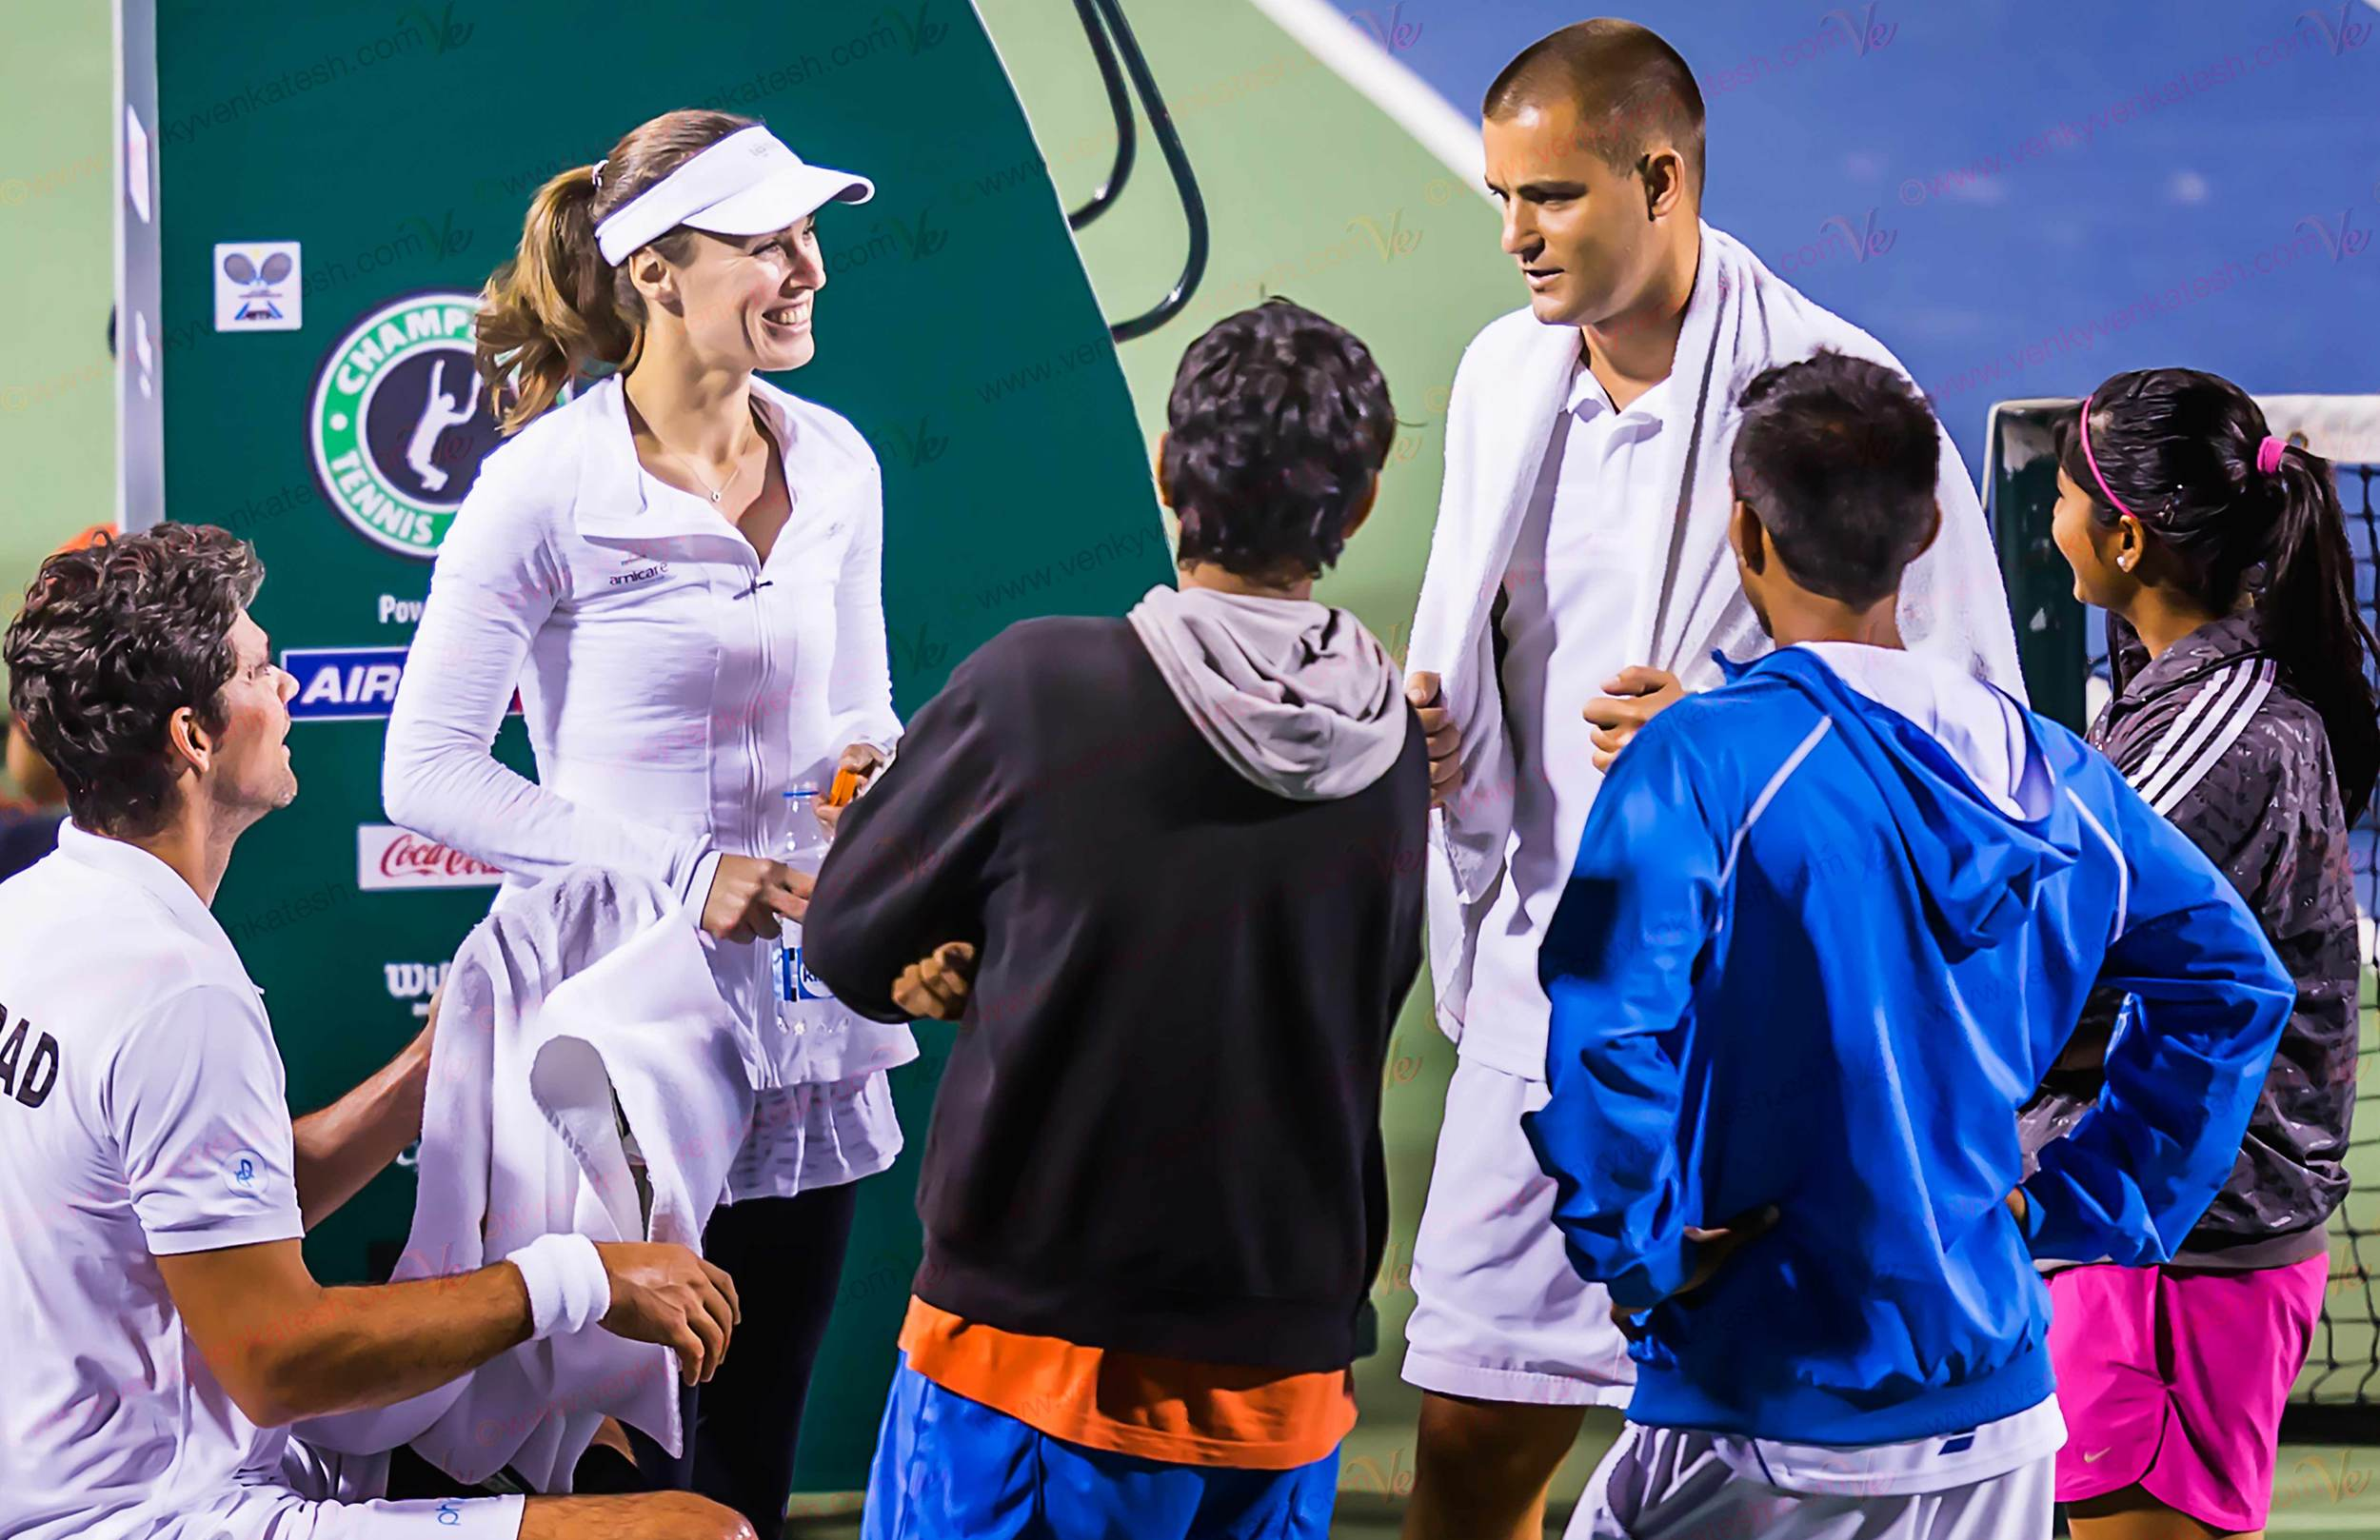 Tennis-on-the-pitch-conf2.jpg